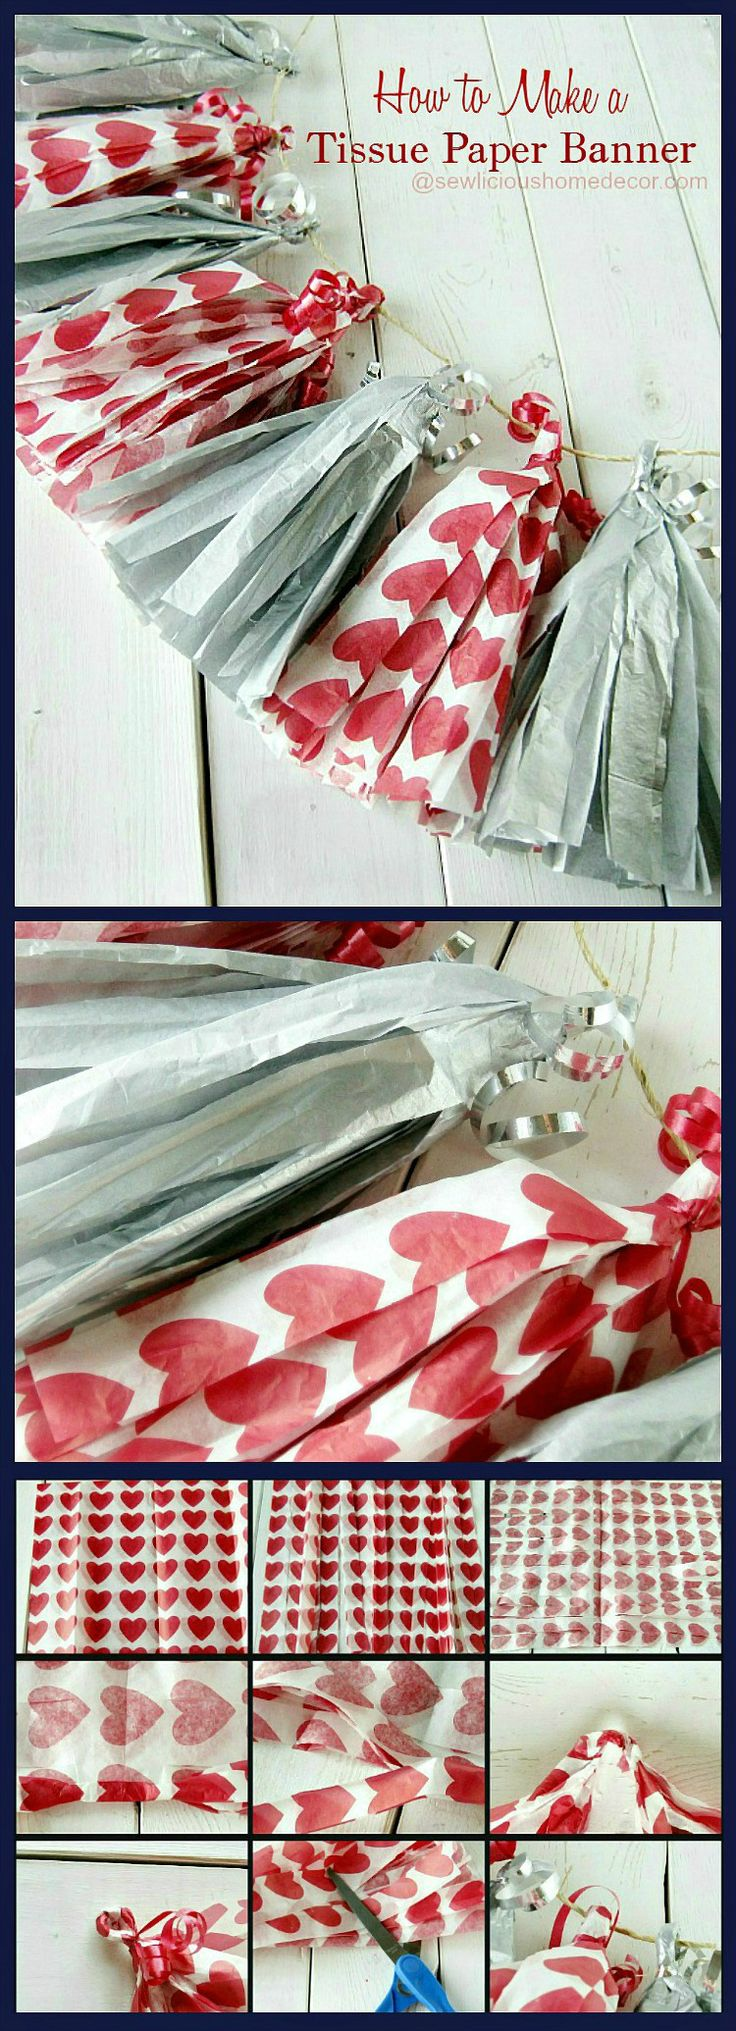 How To Make Tissue Paper Party Banners Tutorial. Use heart tissue paper for Valentine's Day parties! sewlicioushomedecor.com